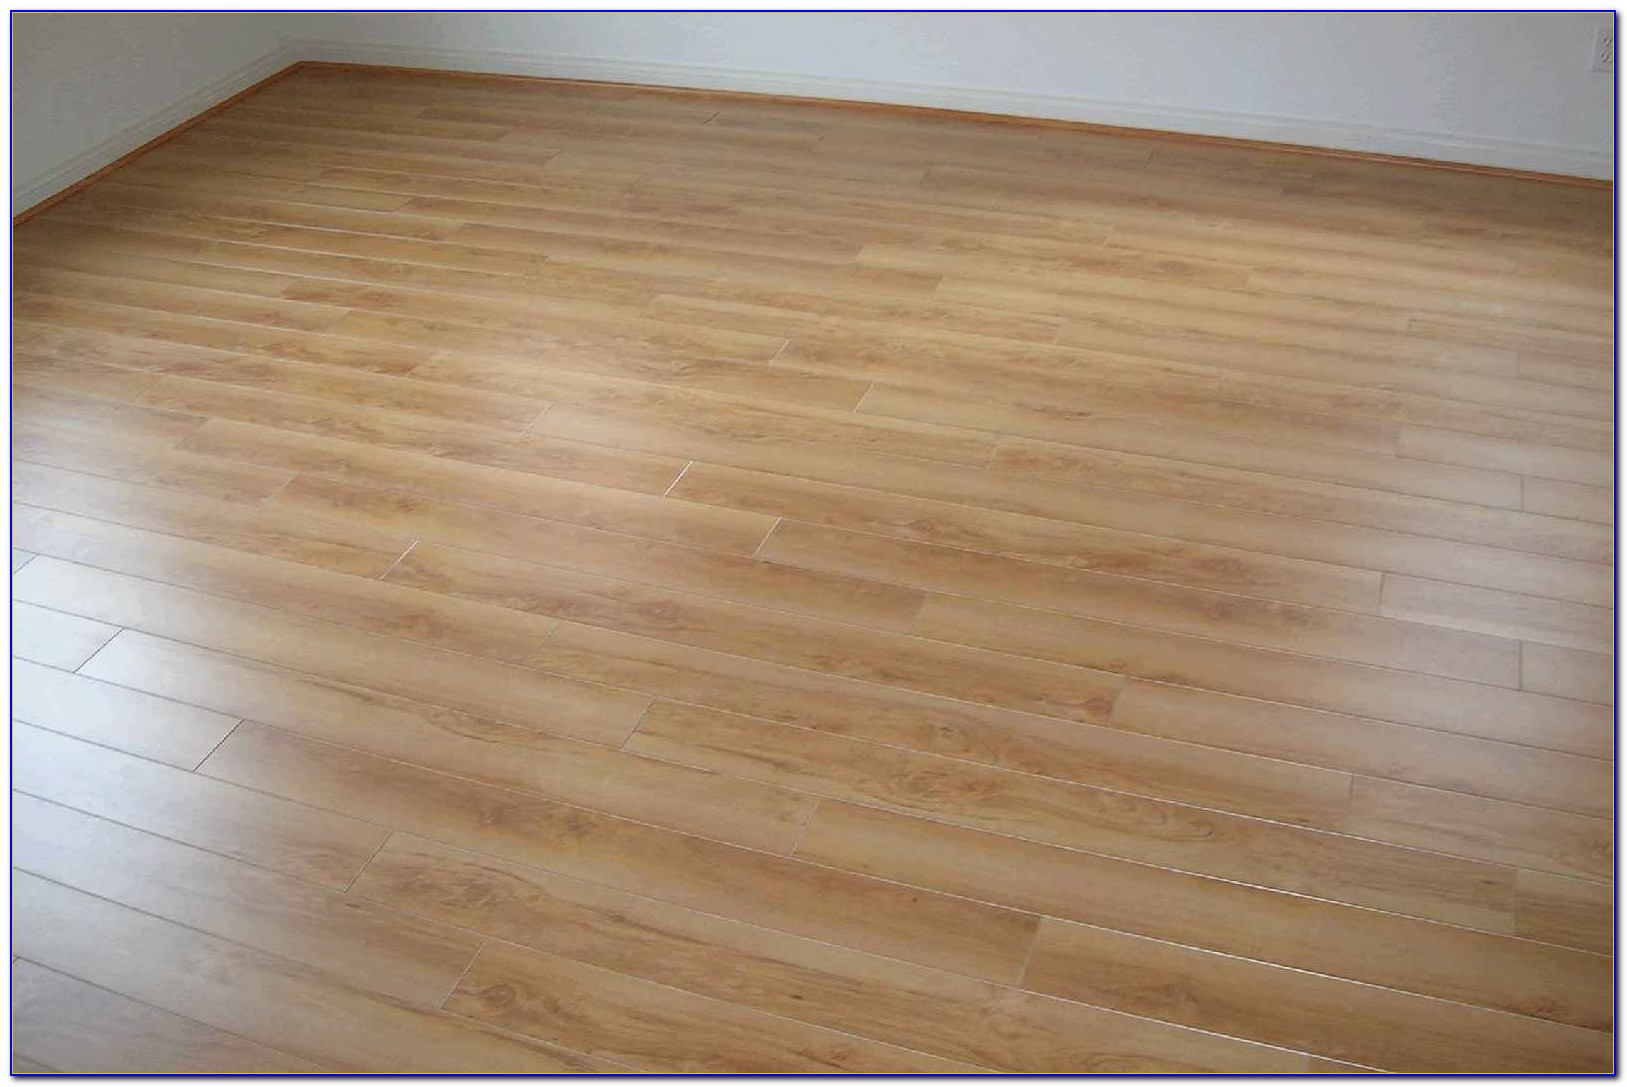 Laminate Flooring Thickness For Basement